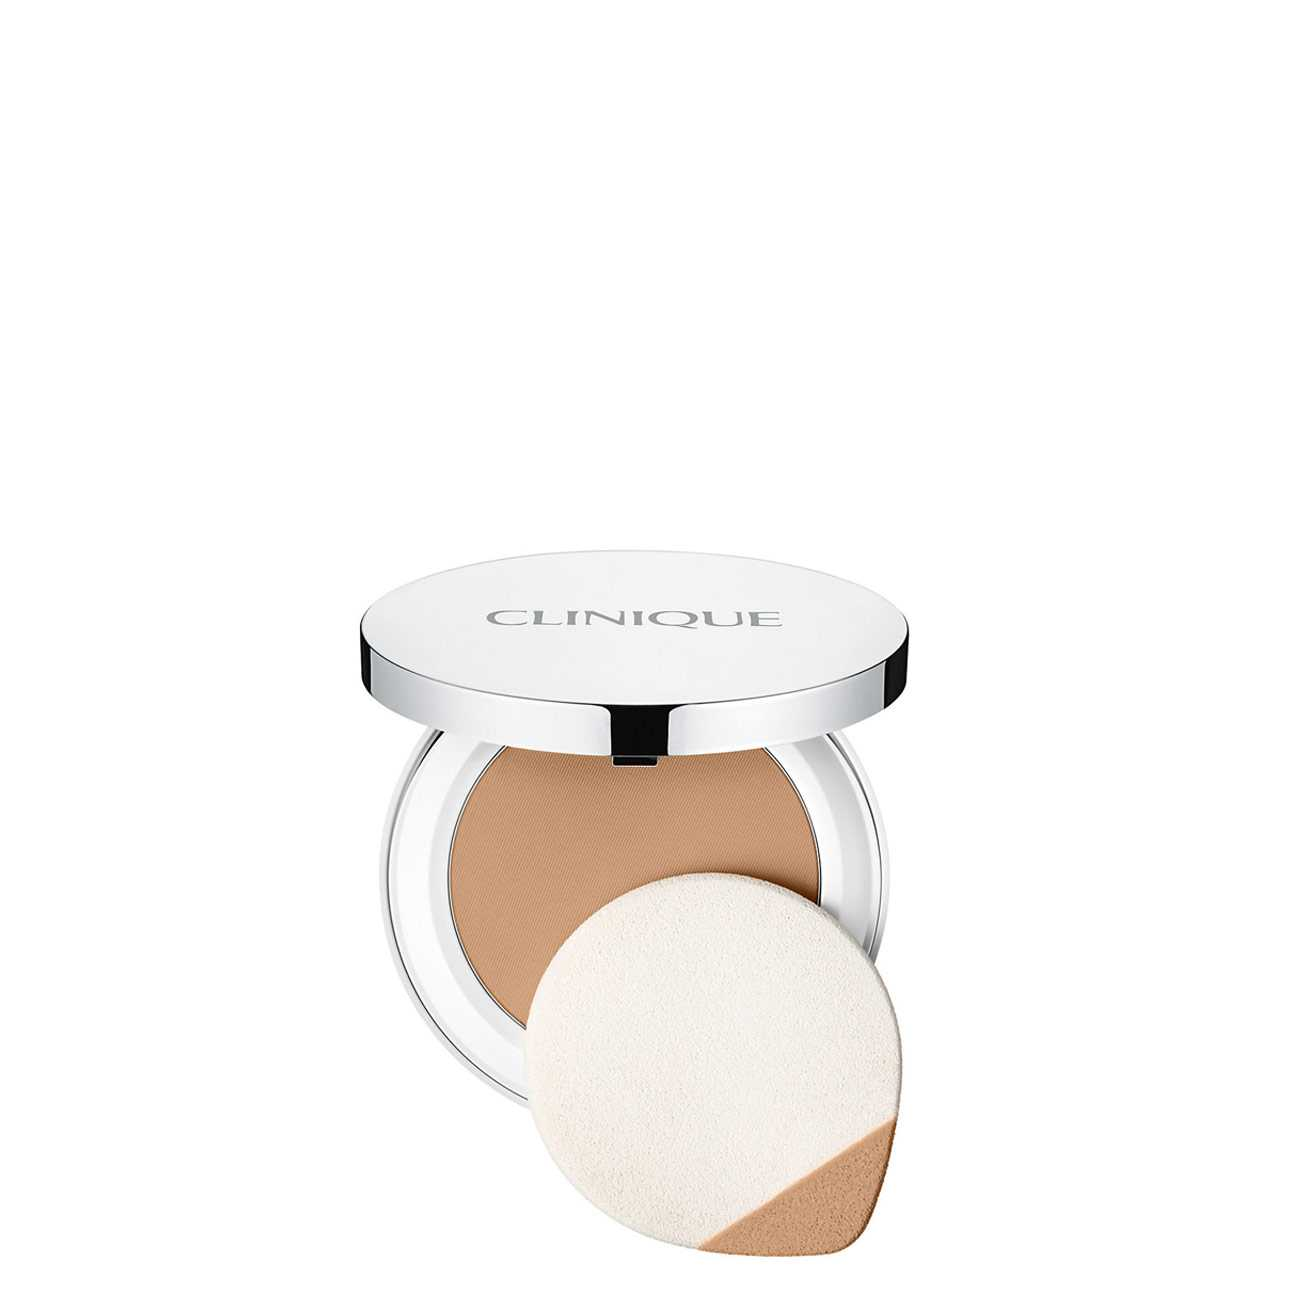 BEYOND PERFECTING POWDER FOUNDATION 14 ML Neutral 9